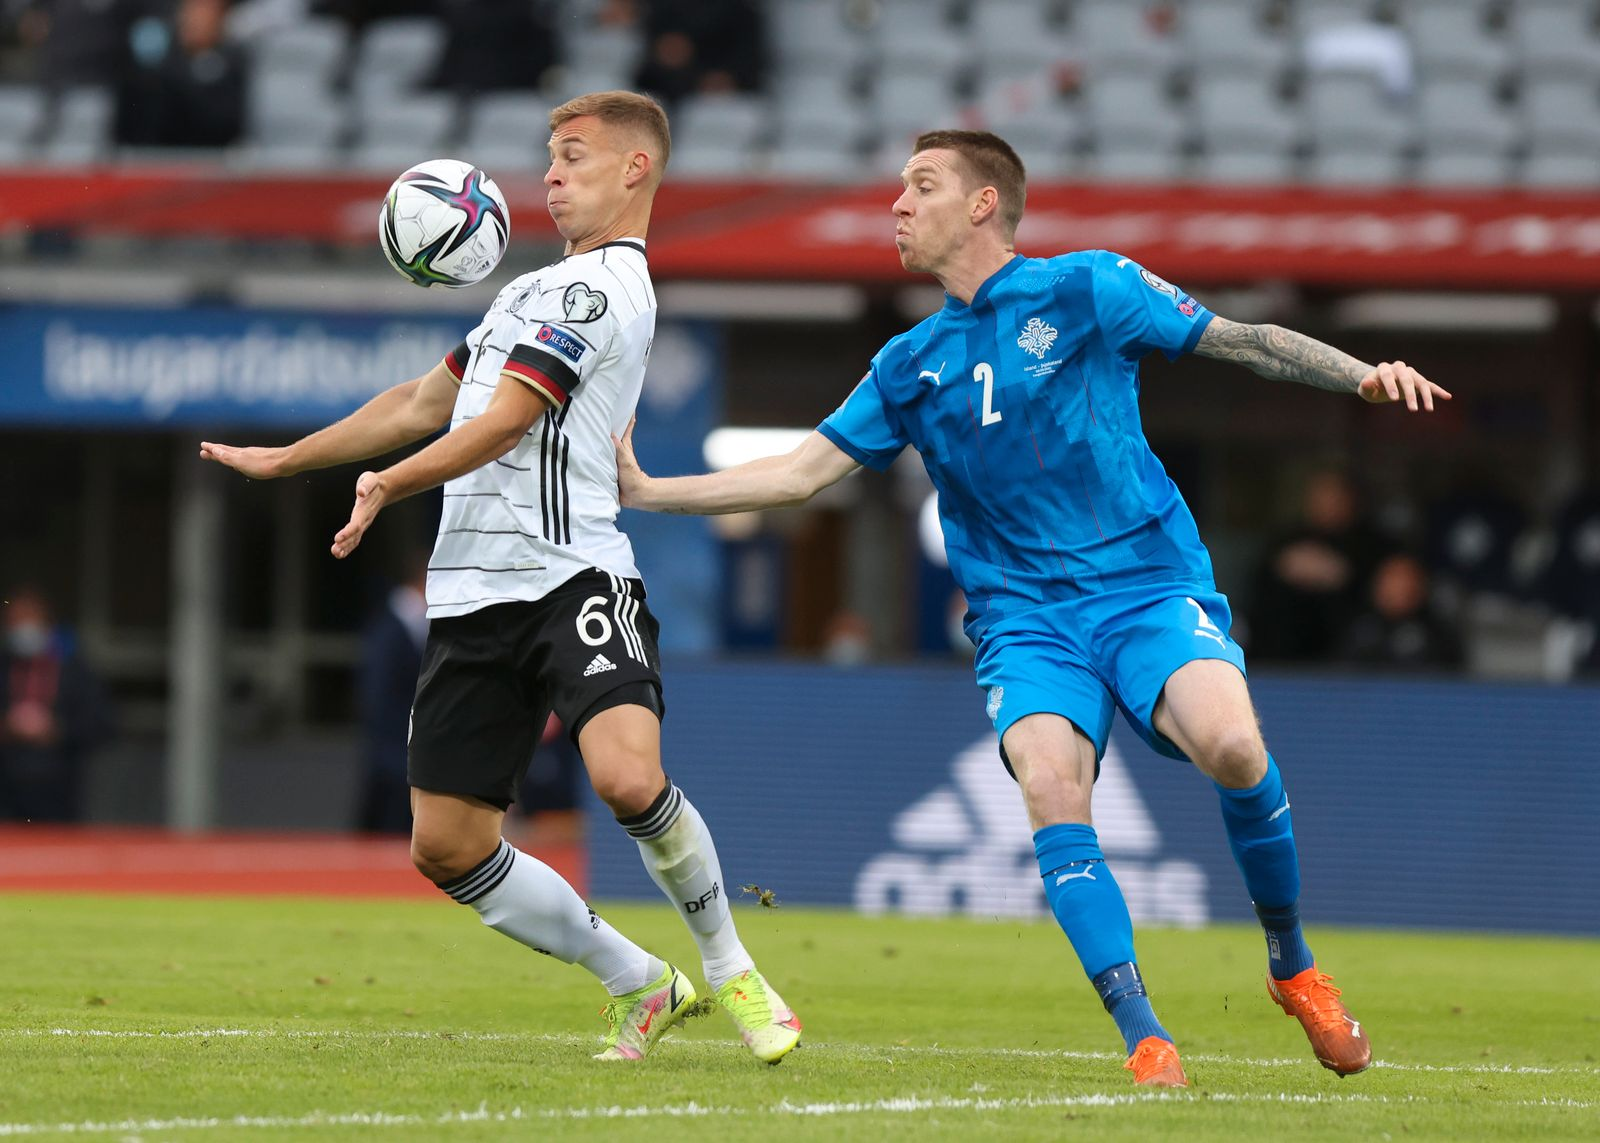 Iceland Germany WCup 2020 Soccer